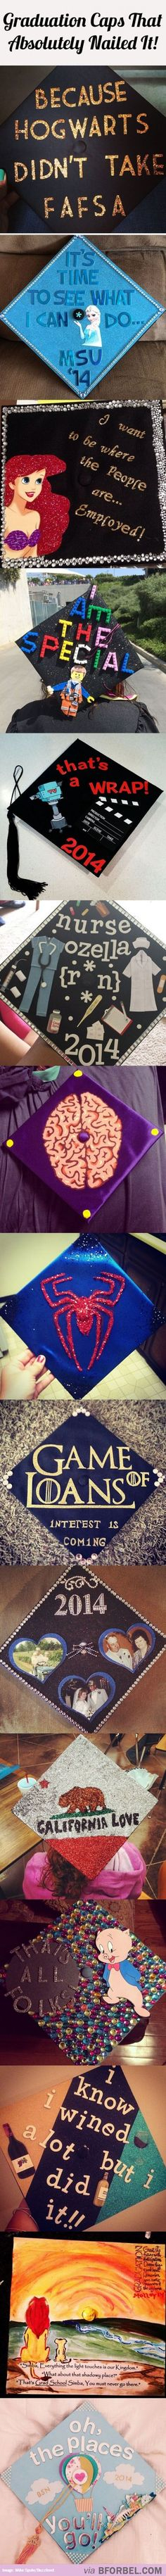 15 Awesome Graduation Caps That Just Nail The Graduation Spirit...